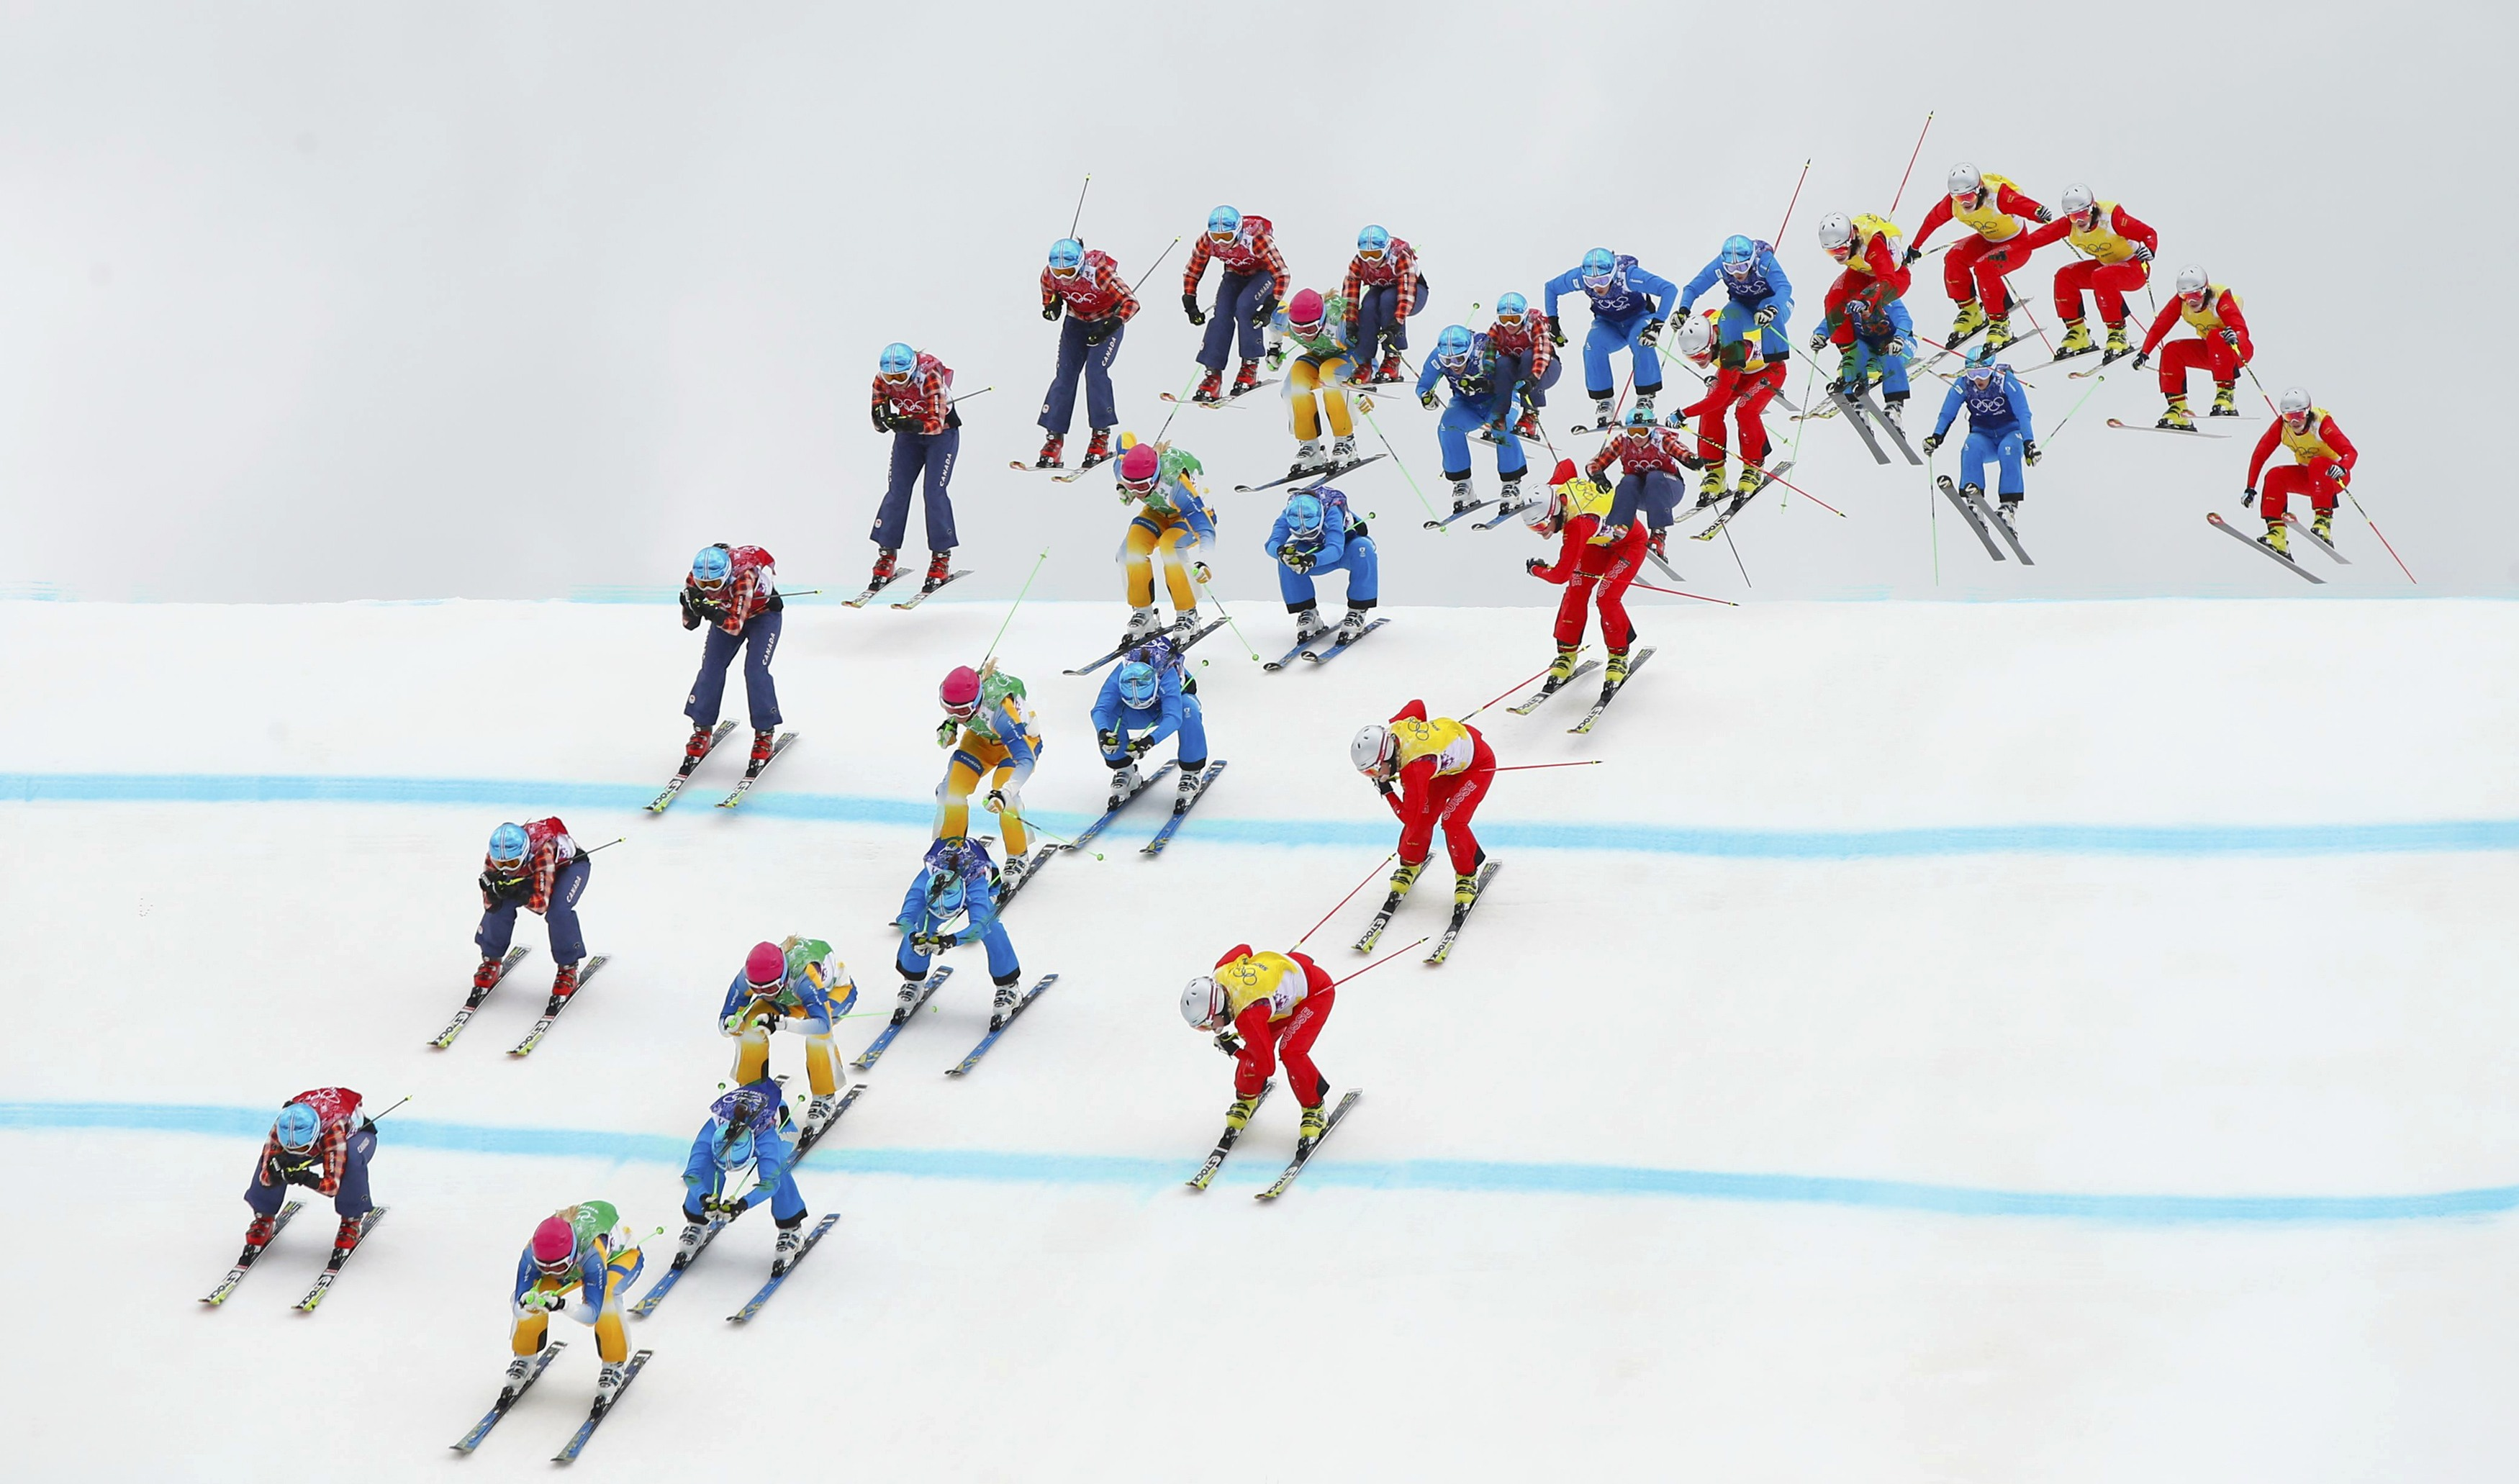 2014 winter olympic games february 21 2014 reuters julio cortez